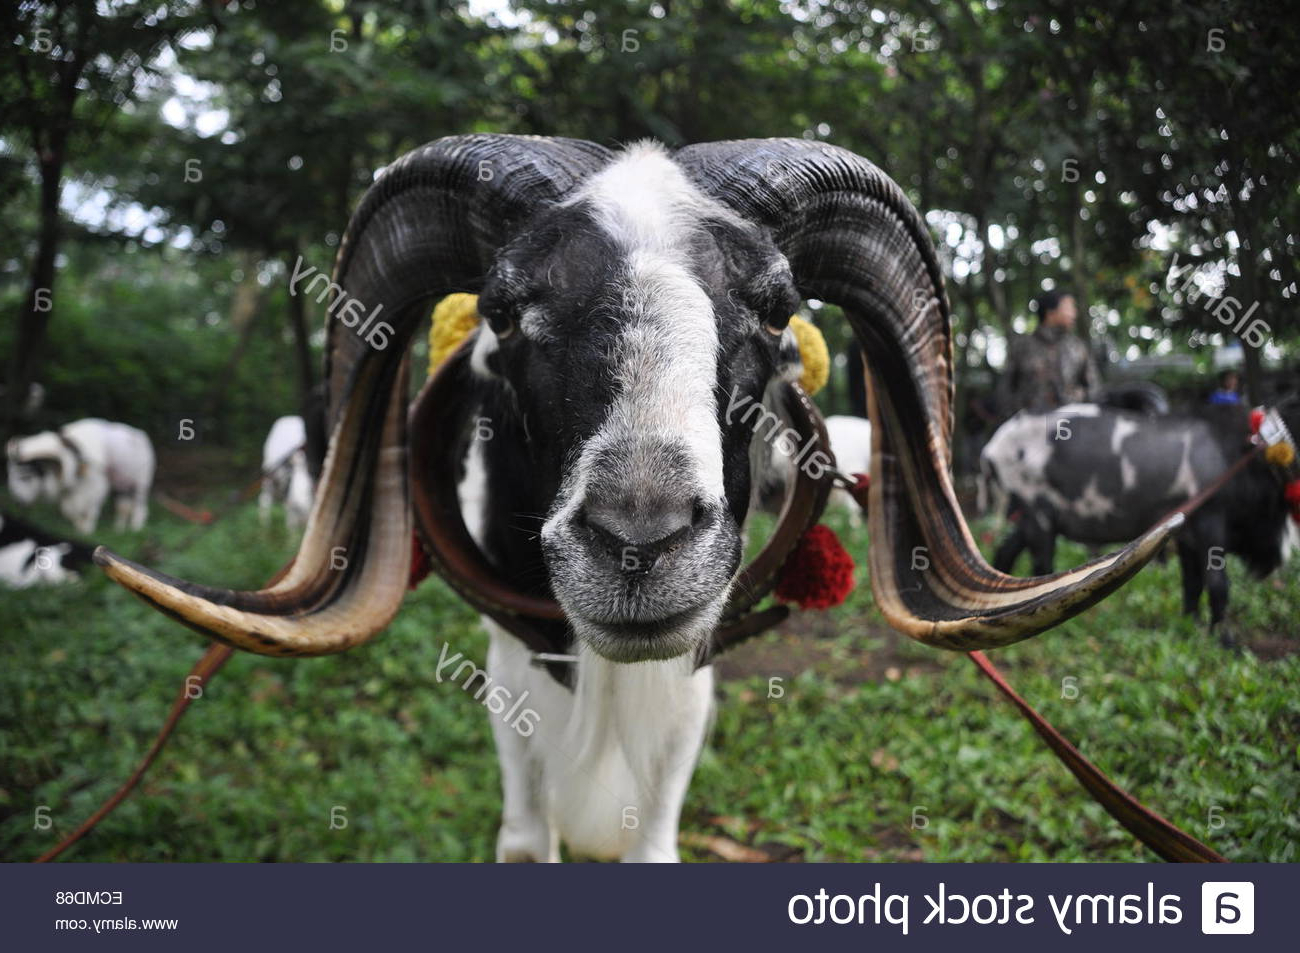 Domba Combats De Garut Photo Stock – Alamy in Gambar Domba Hd